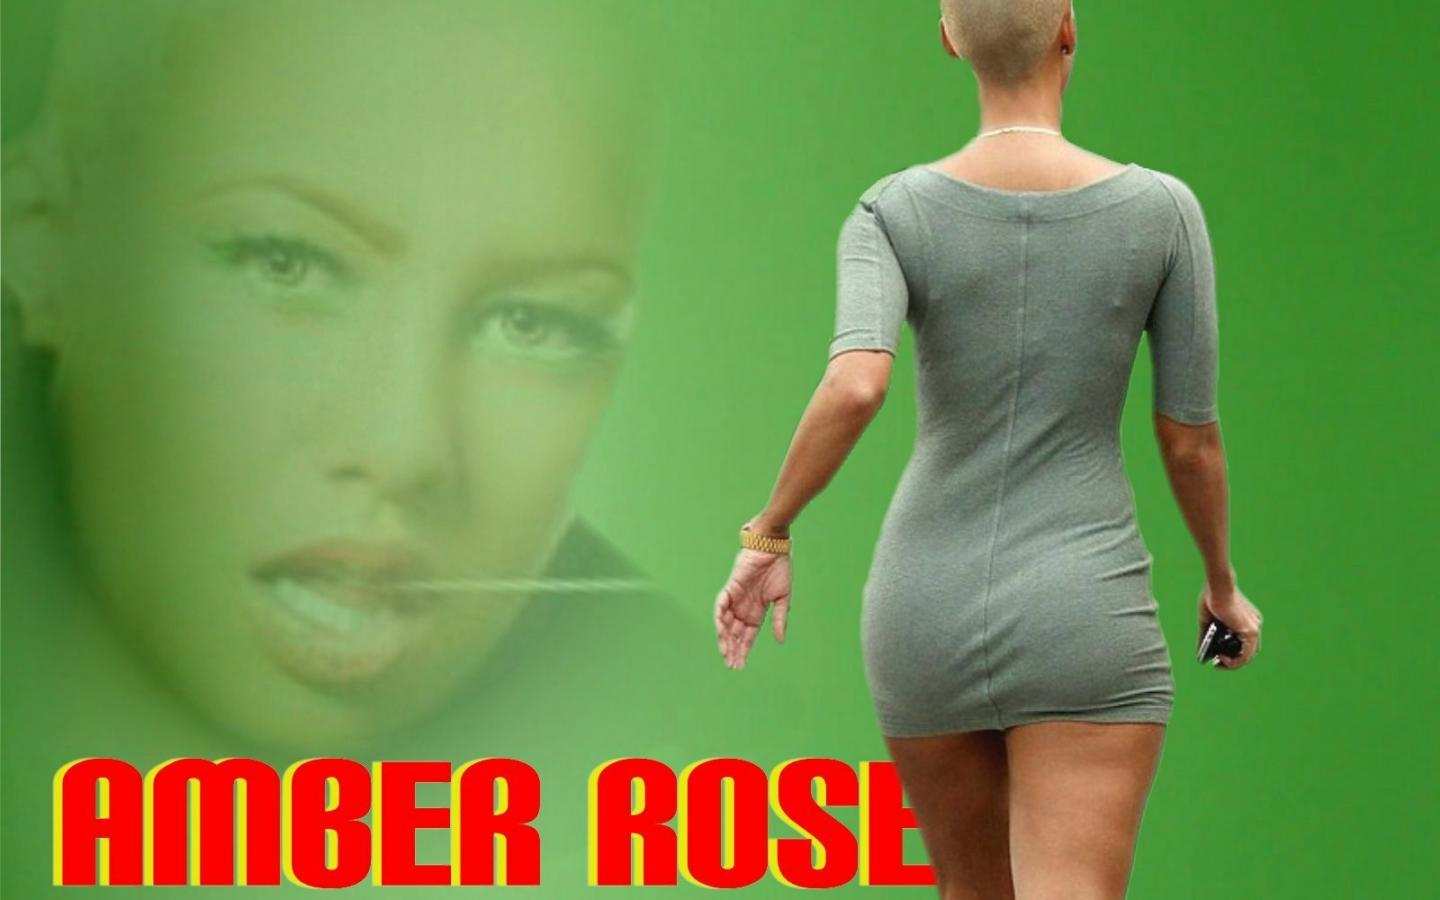 1440x900 - Amber Rose Wallpapers 30